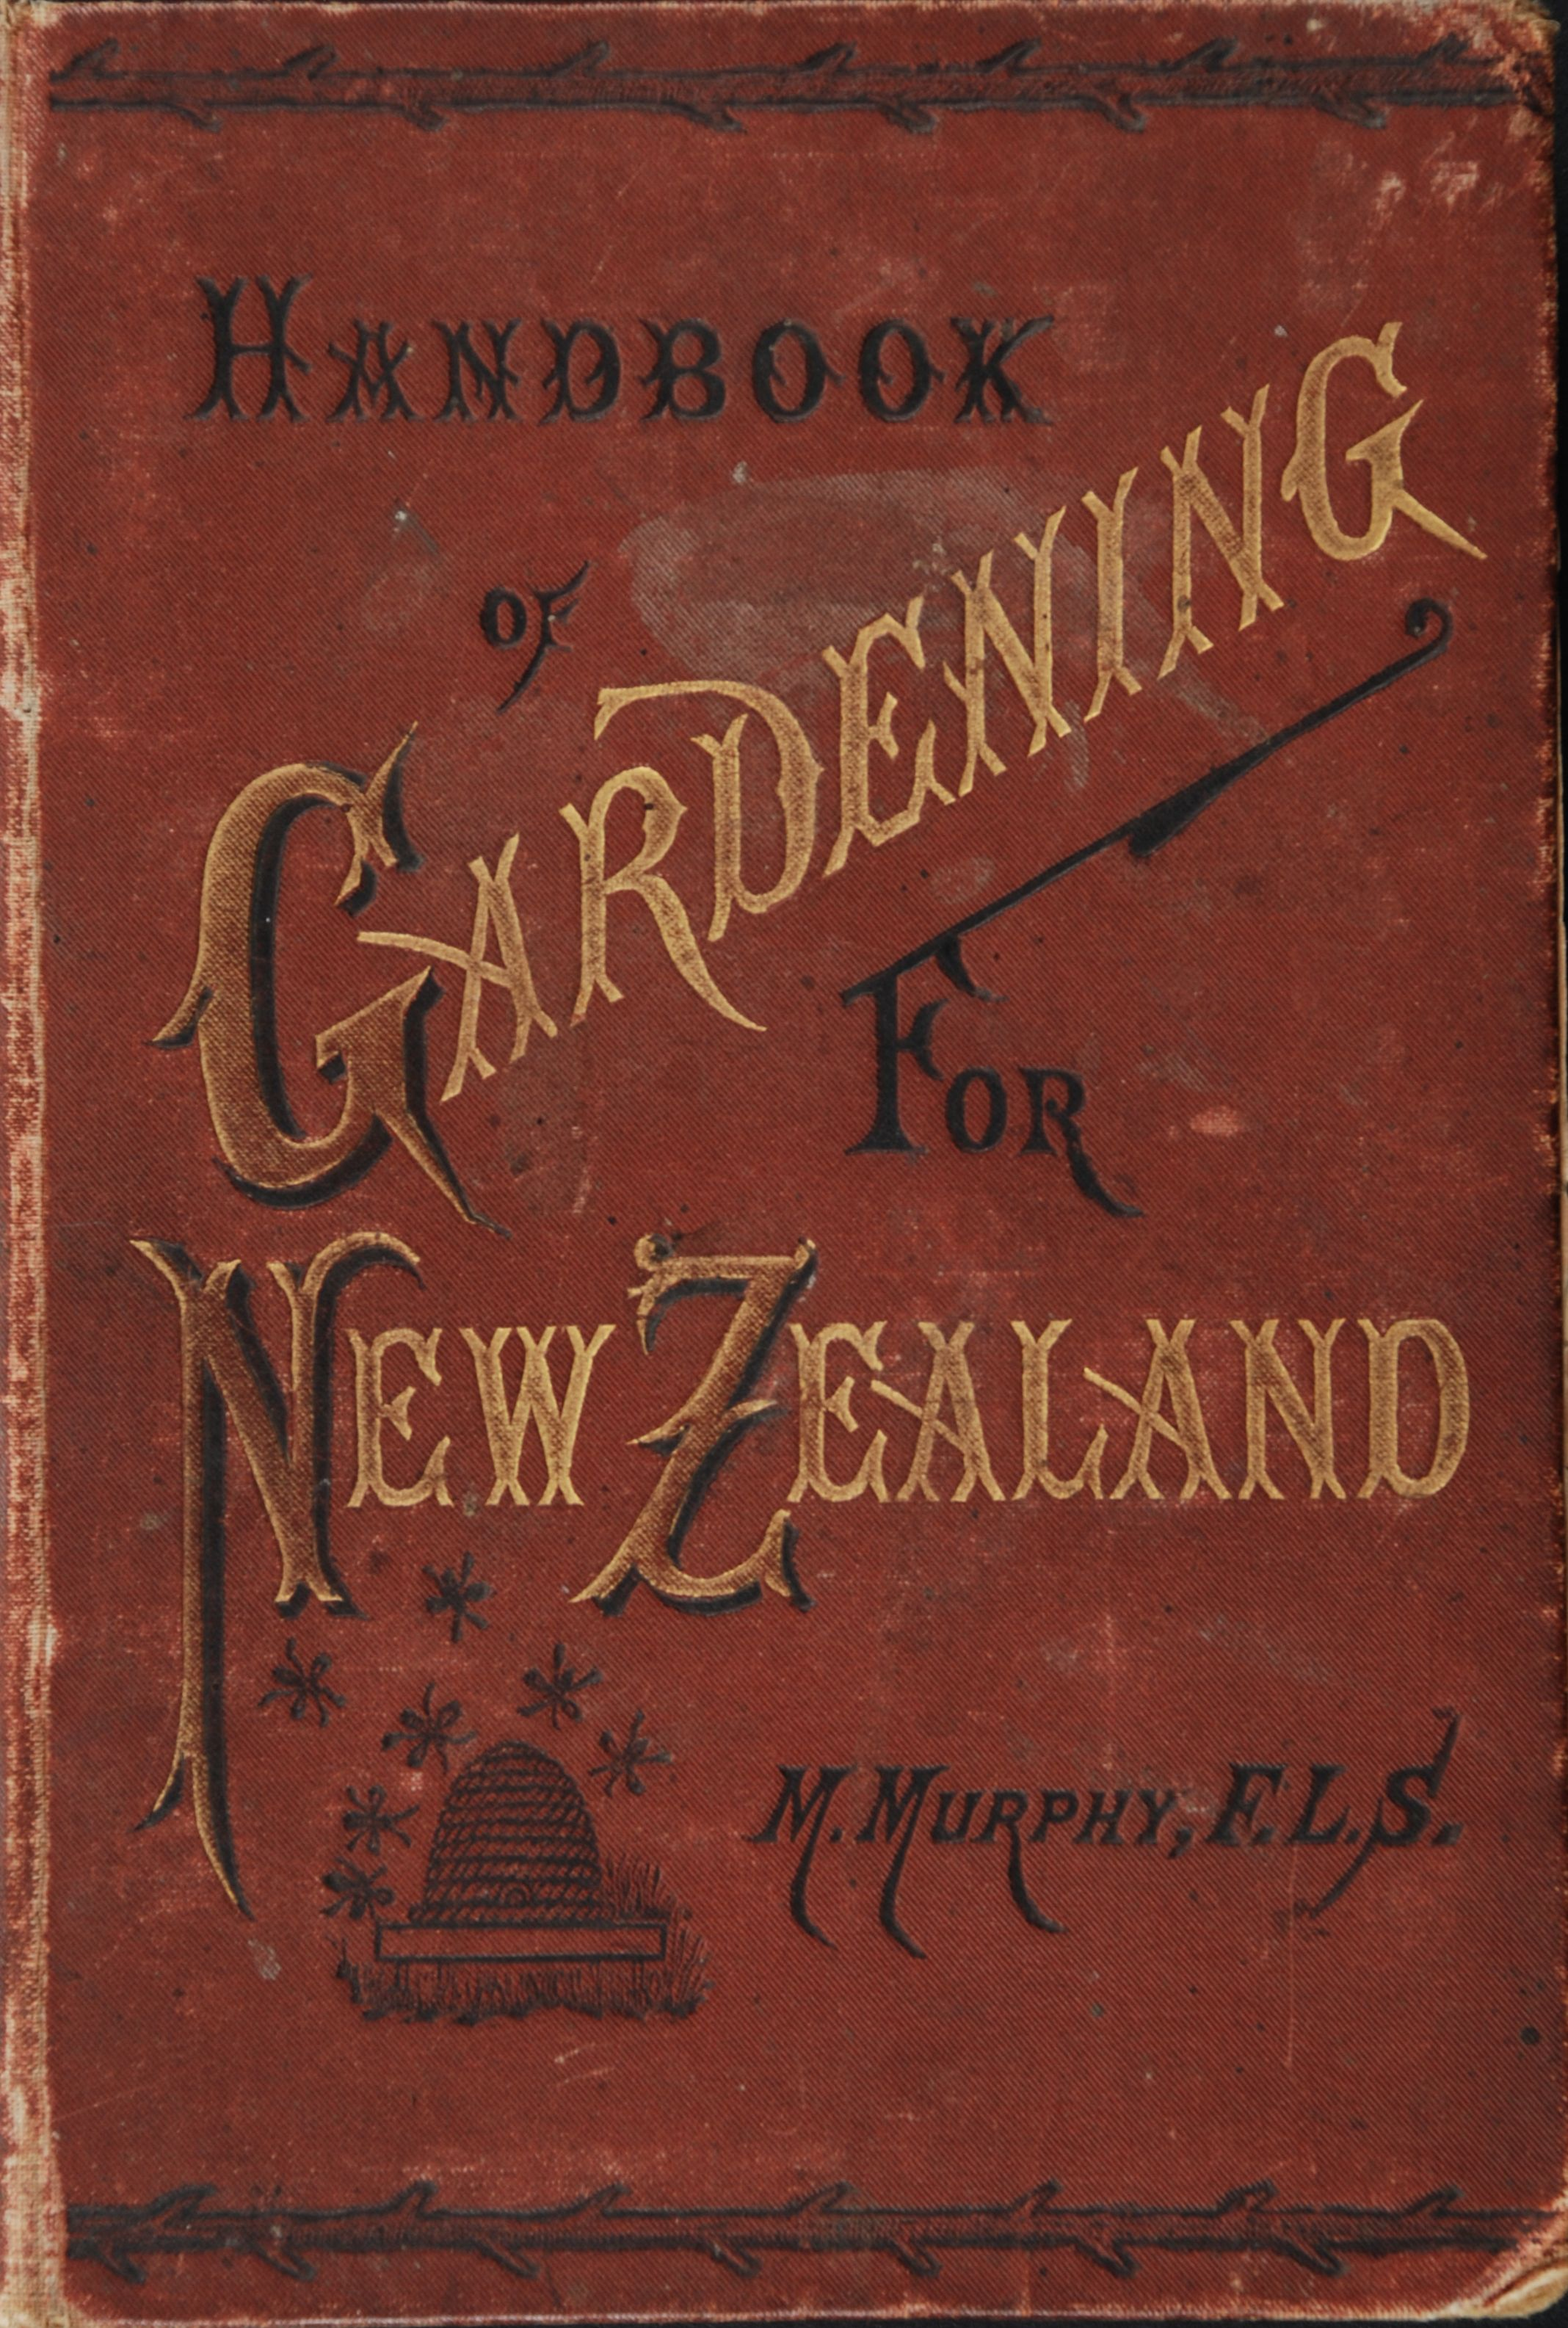 Michael Murphy. Handbook of Gardening for New Zealand: with chapters on poultry & bee-keeping. 2nd edition. Christchurch, N.Z.: Whitcombe and Tombs, [1888].